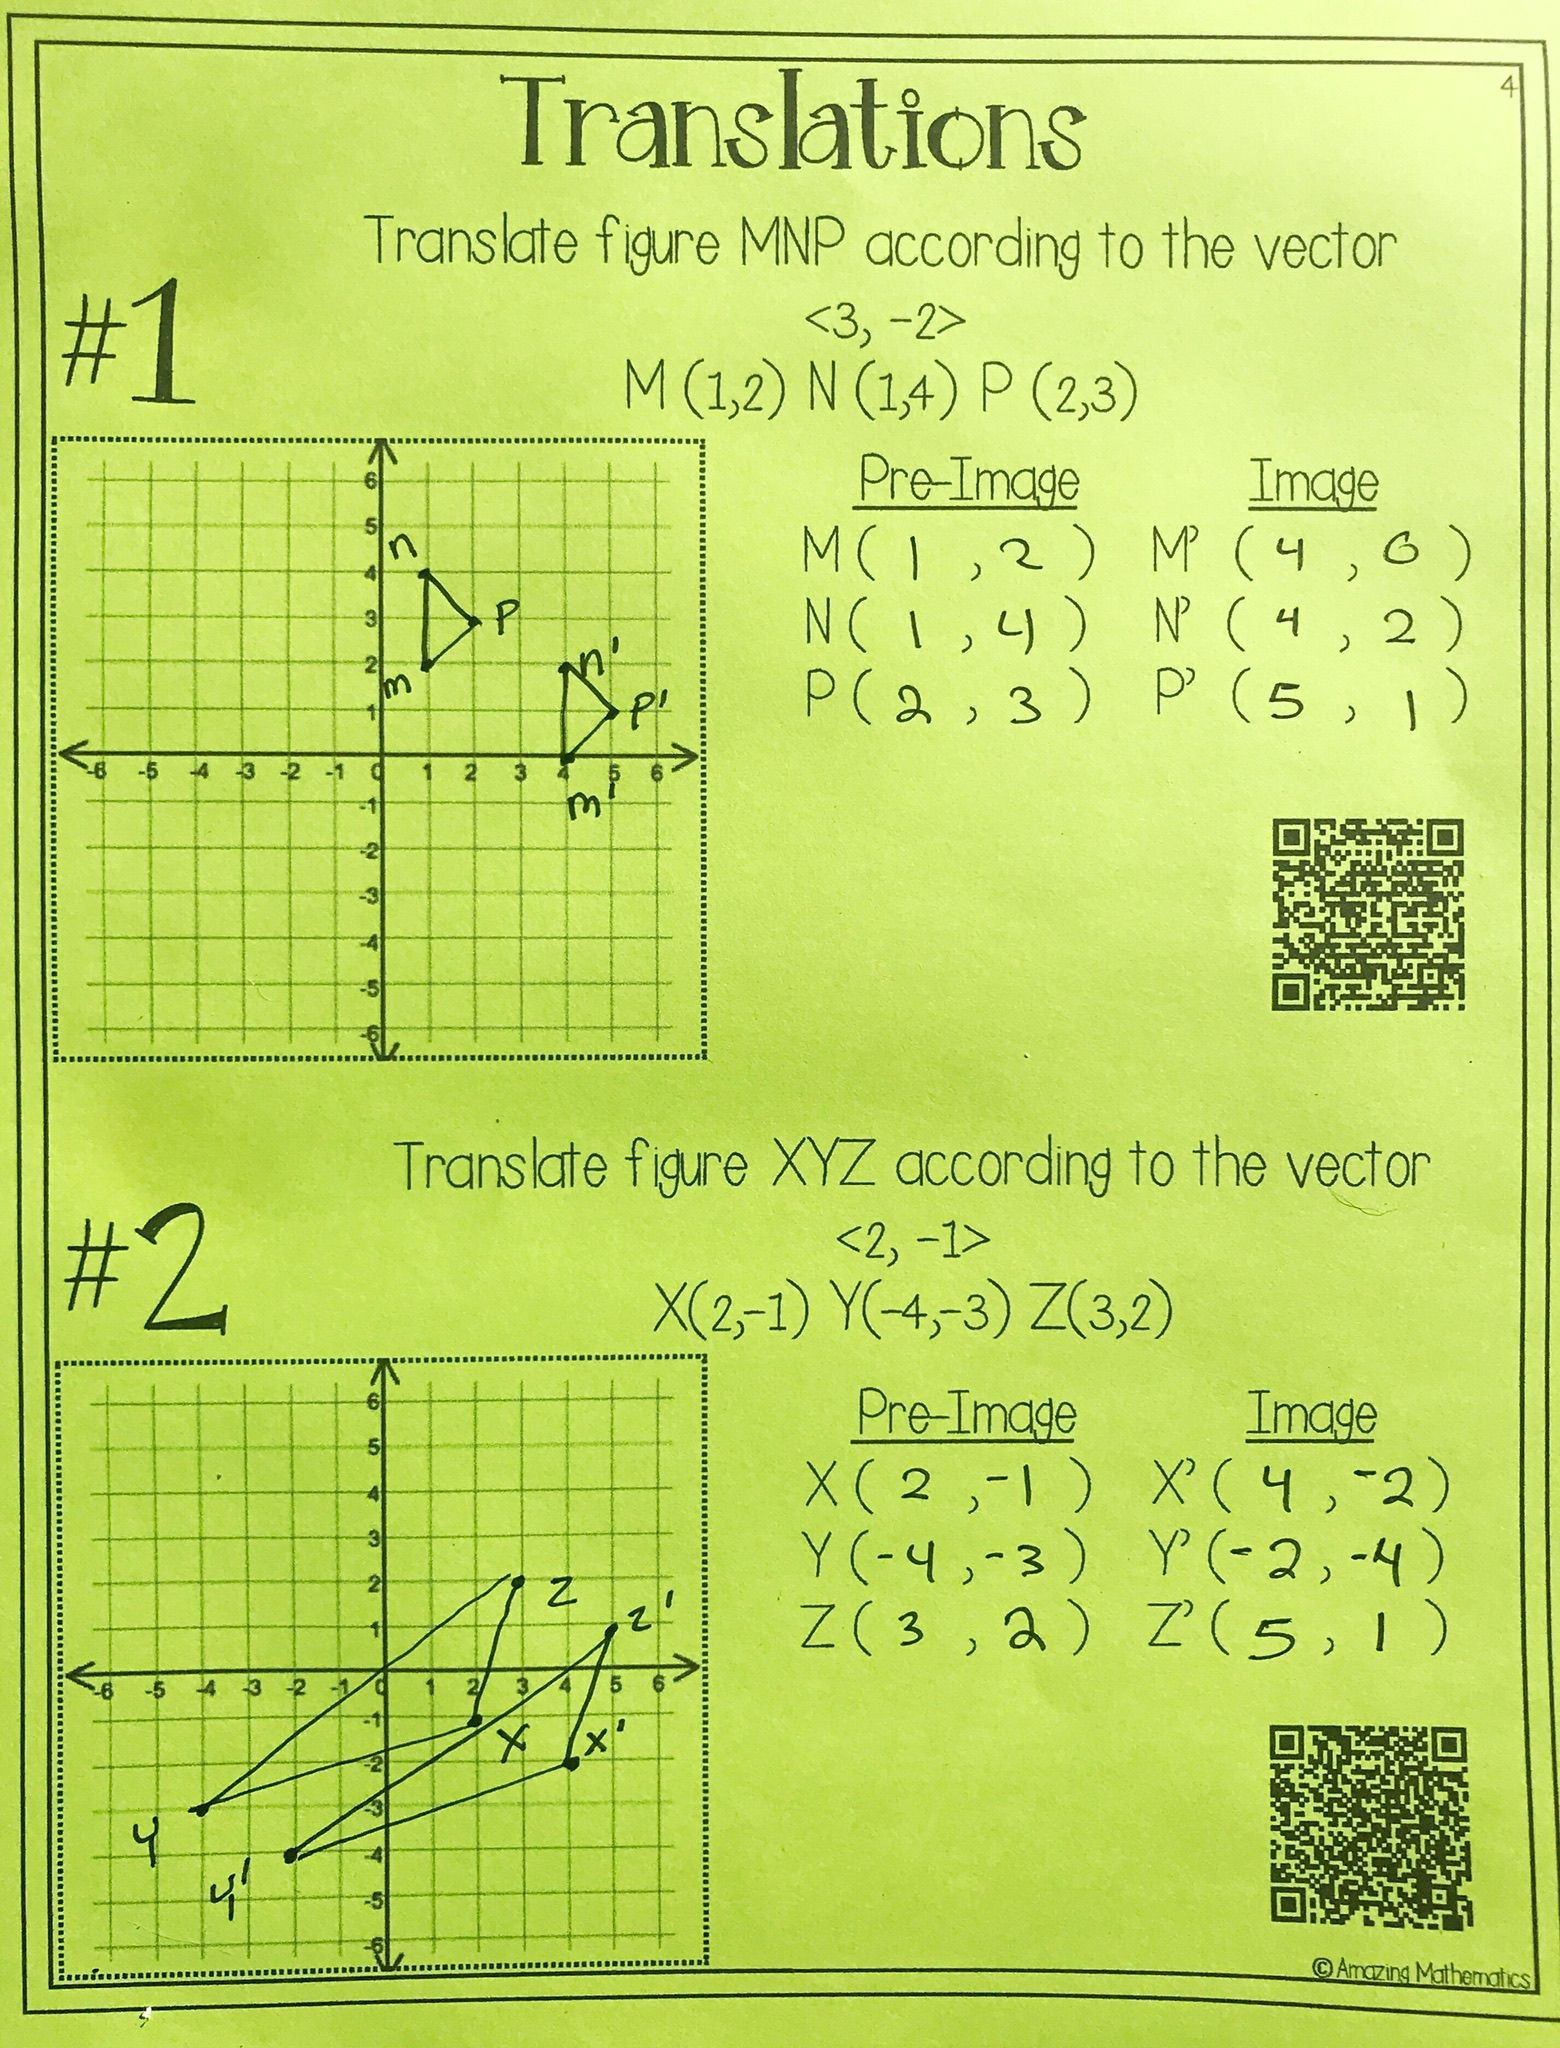 Geometry Transformations Worksheet Answers Hs Geometry Transformations Workbook Translations